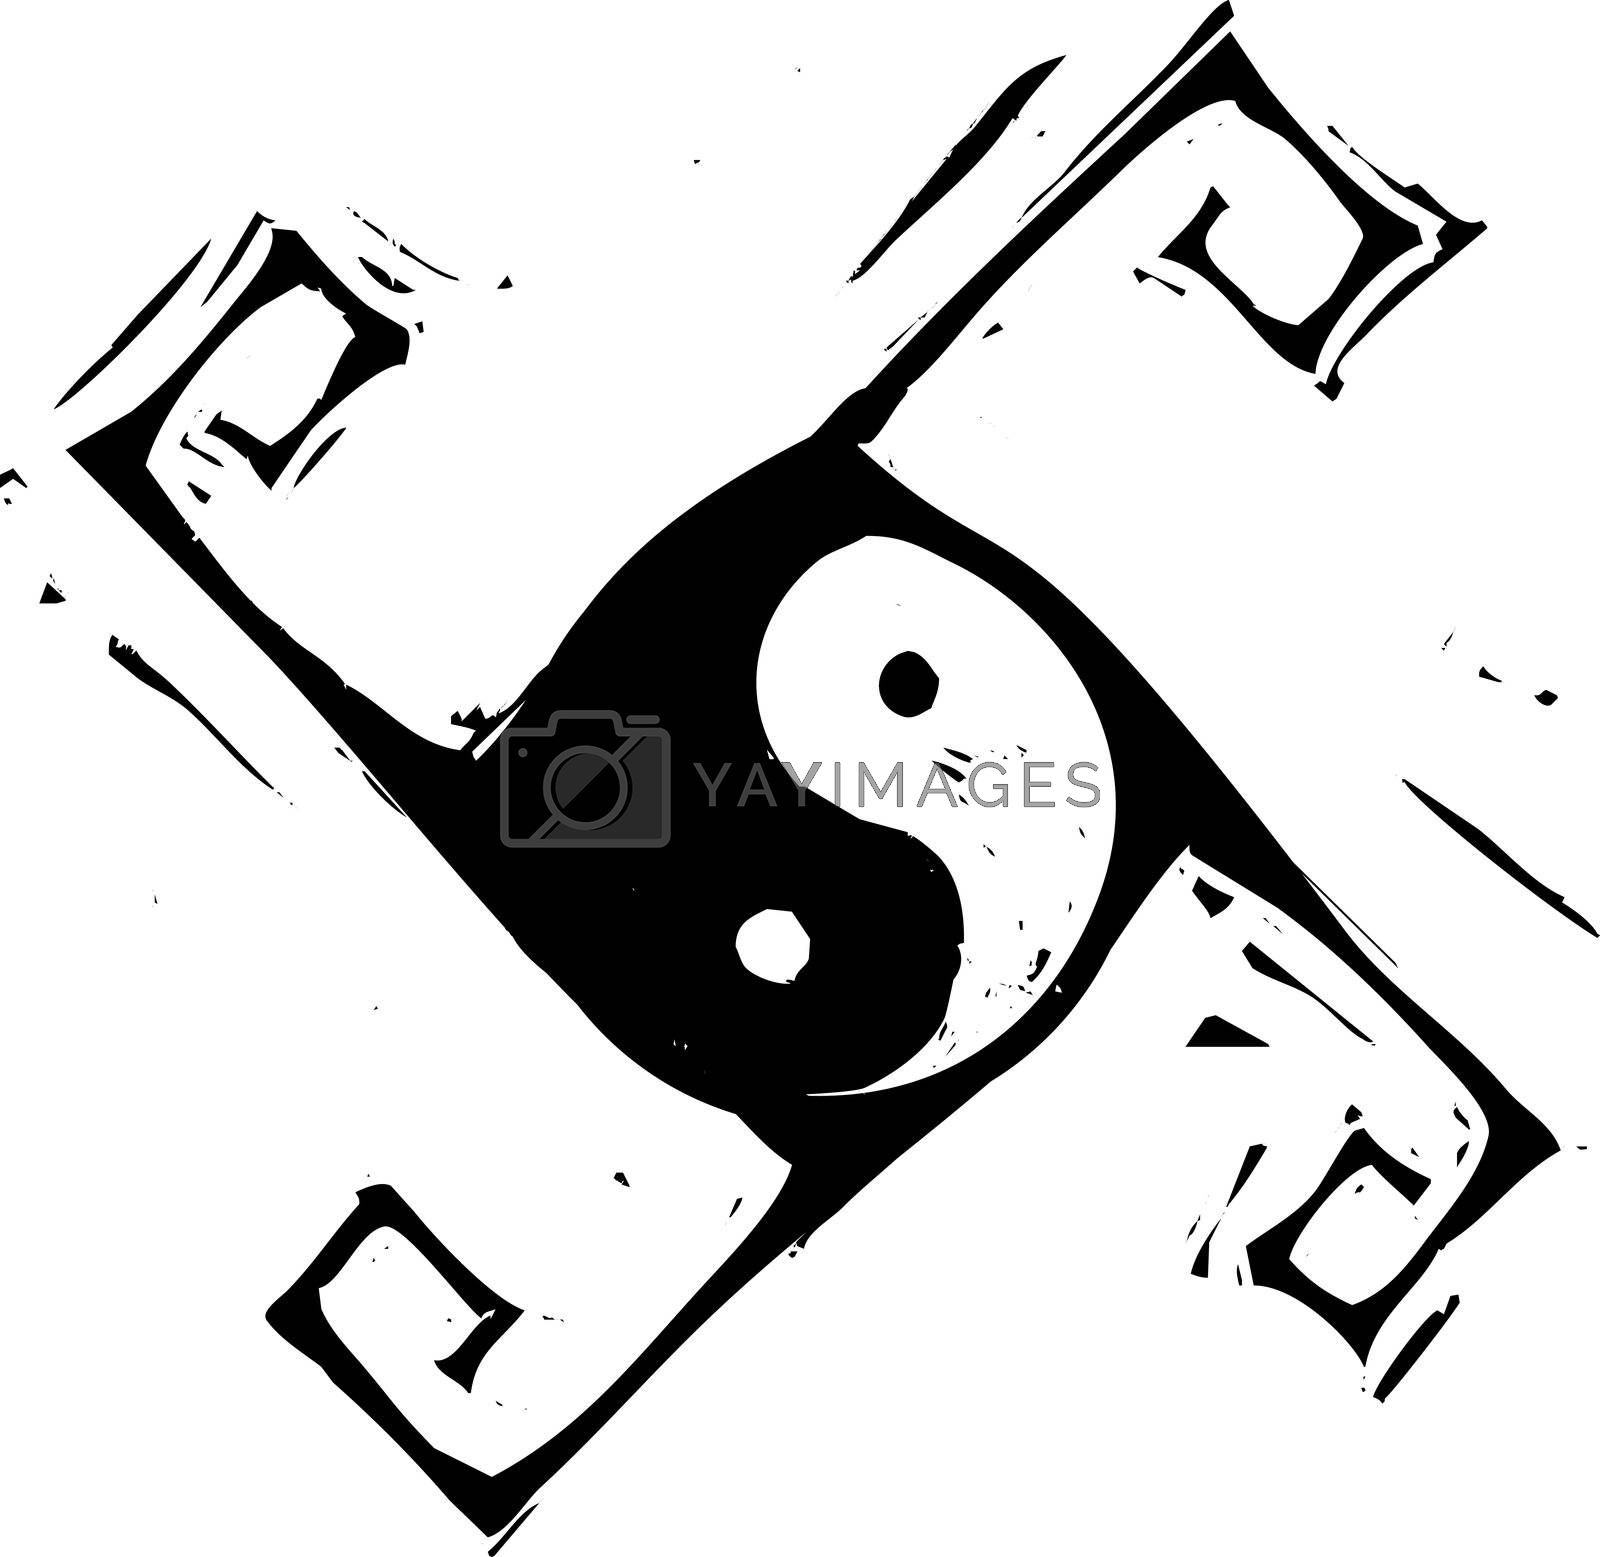 Yin and Yang Symbol in spinning cross pattern.